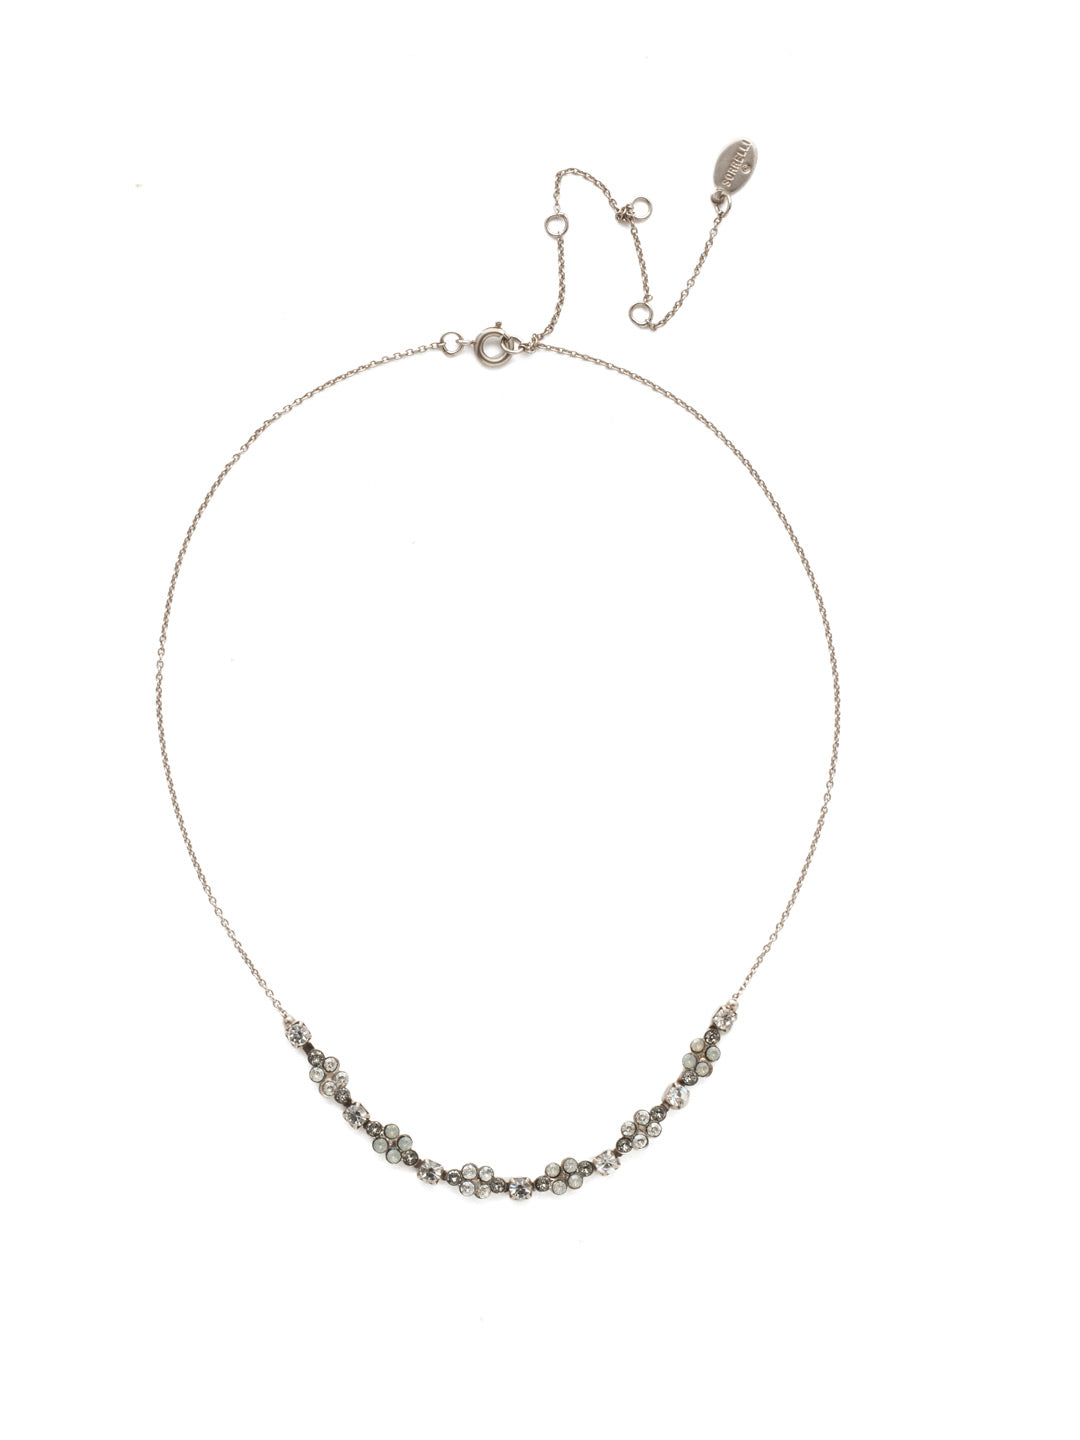 Mavis Tennis Necklace - NEN7ASSTC